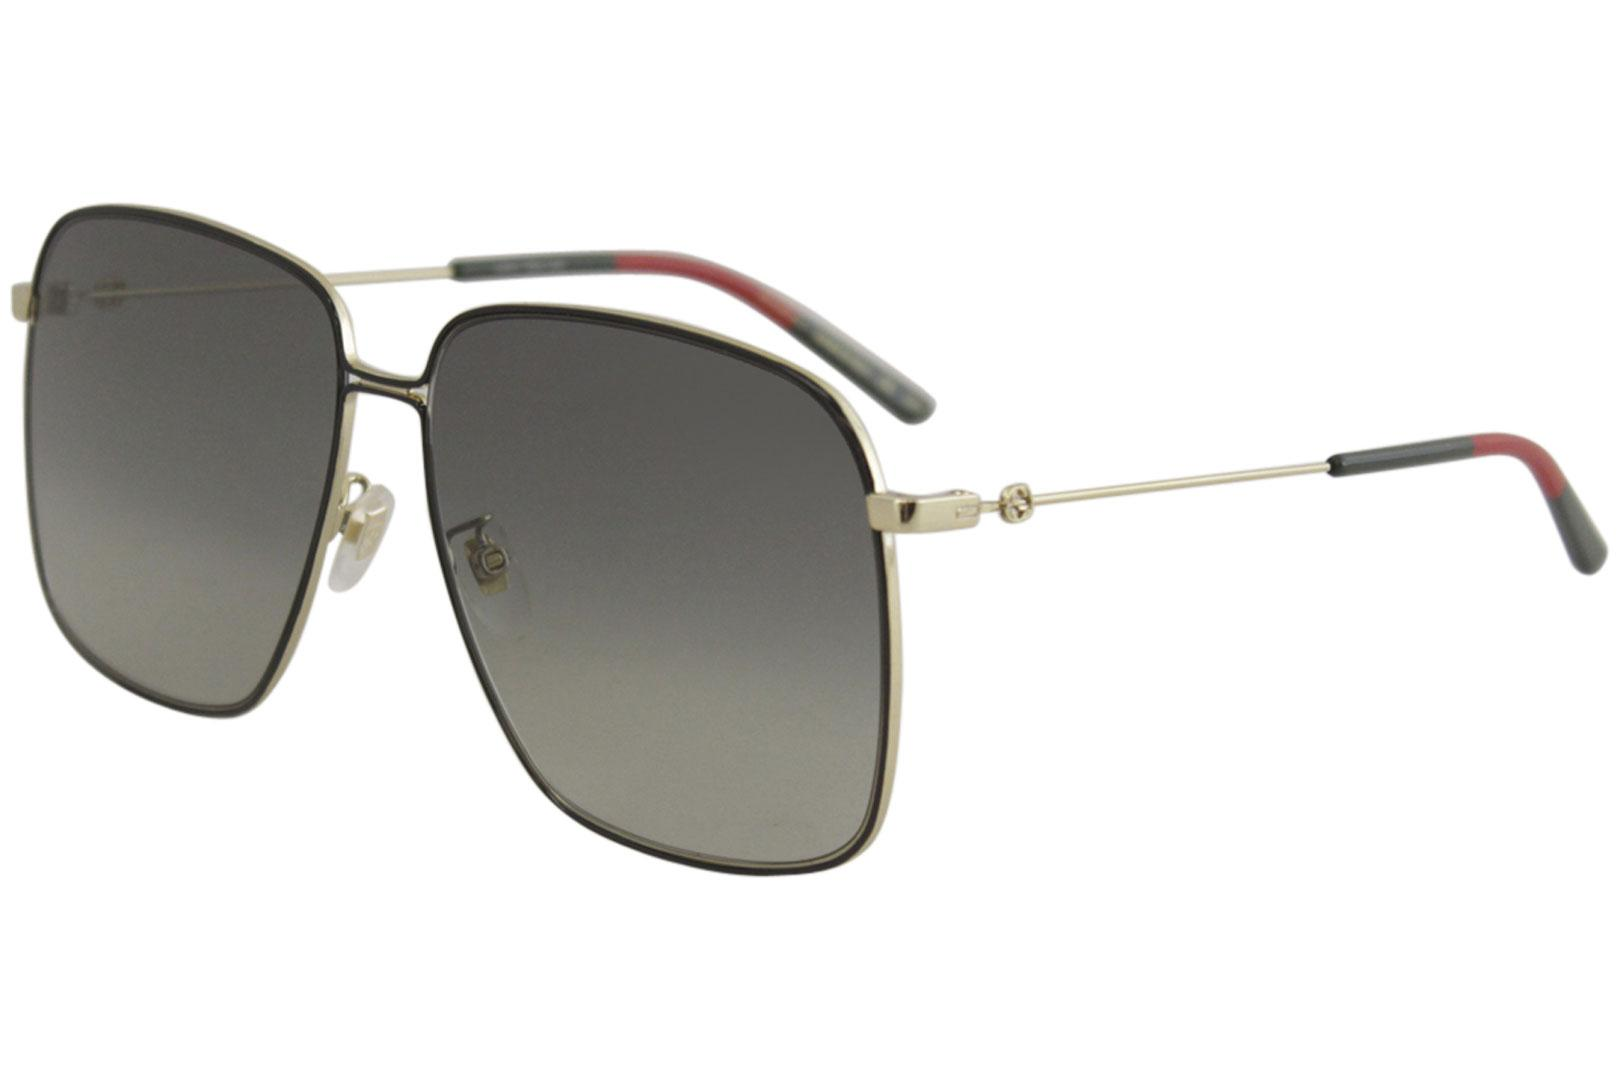 7b91dac9bb8 Gucci Women s GG0394S GG 0394 S Fashion Square Sunglasses by Gucci. Touch  to zoom